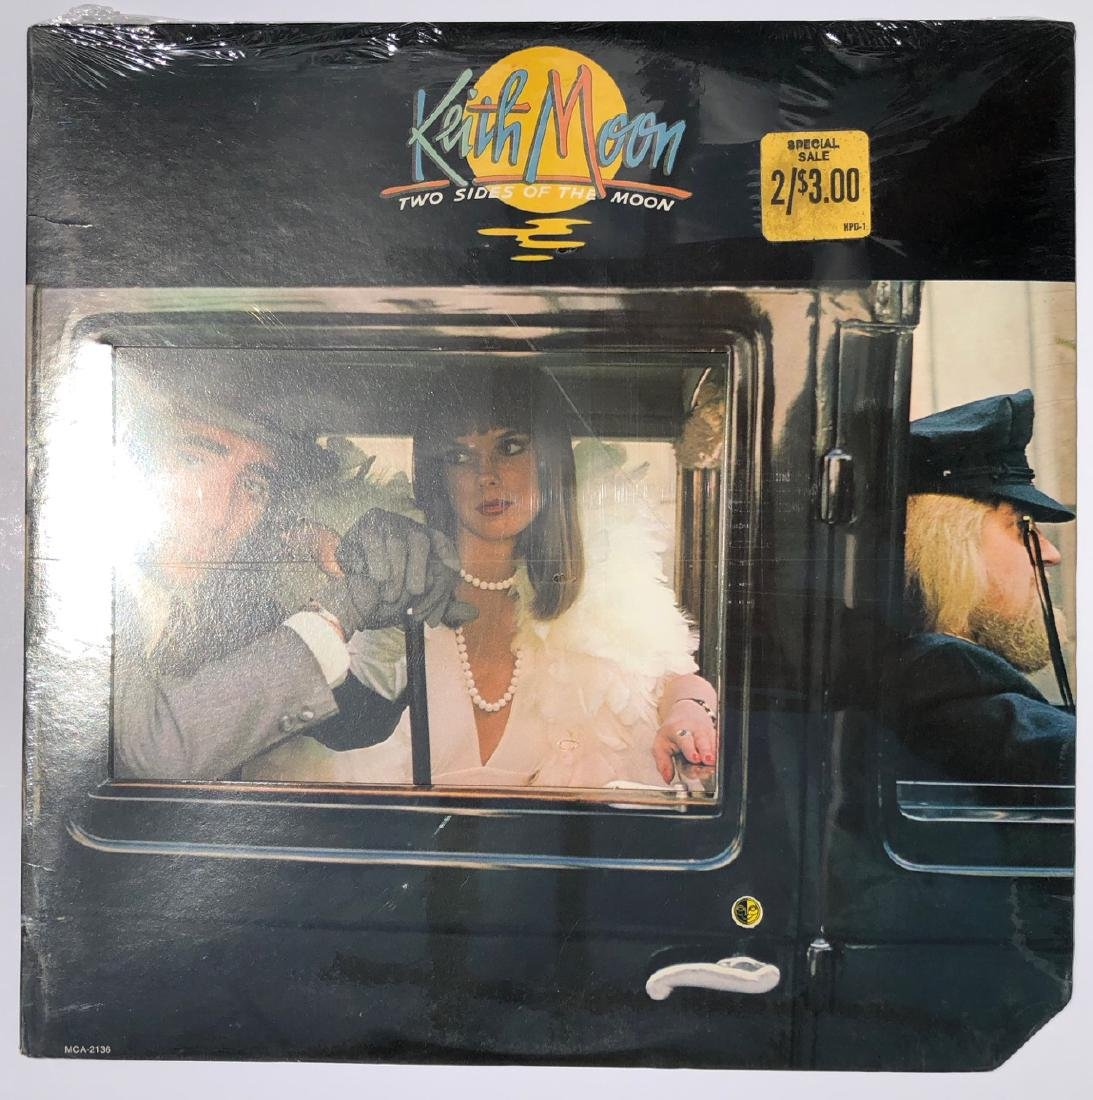 KEITH MOON - TWO SIDES OF THE MOON - STILL SEALED !!!